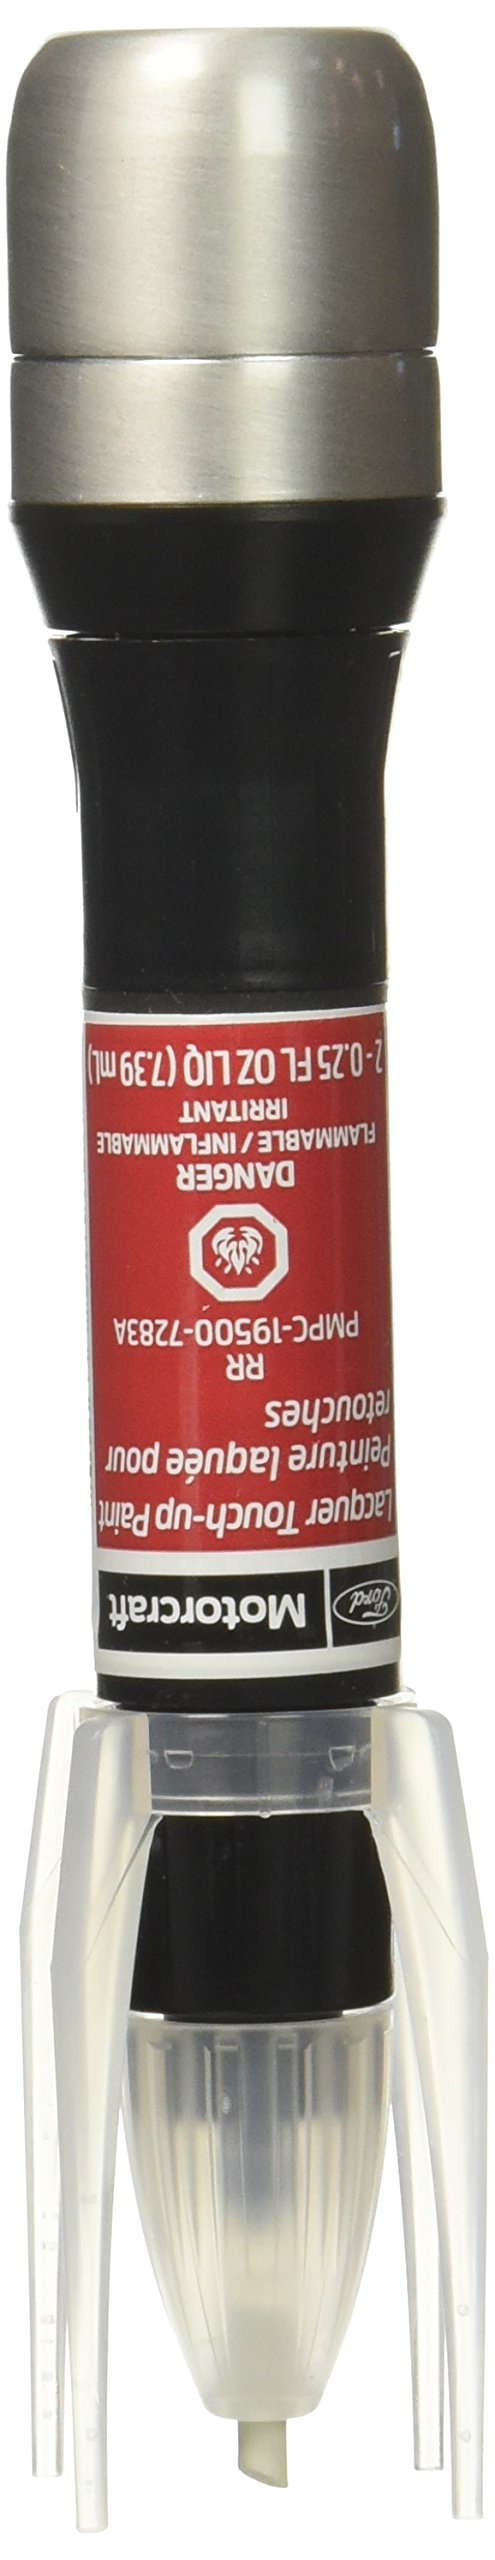 Ford PMPC-19500-7283A Genuine Touch-Up Paint, Rubby Red by Ford